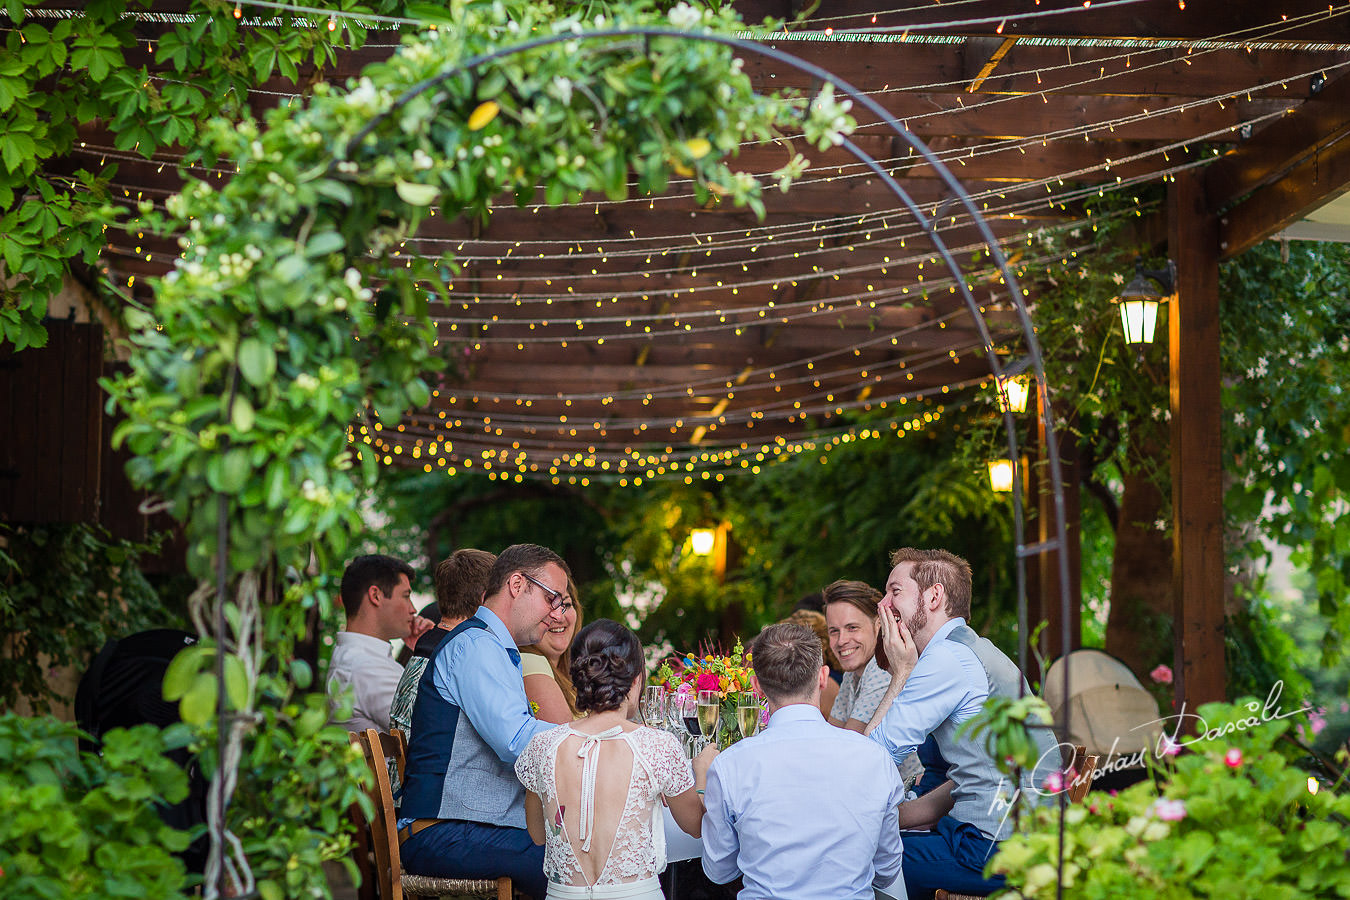 A beautiful wedding day at the Vasilias Nikoklis Inn in Paphos, captured by Cristian Dascalu. Dinner Moments.